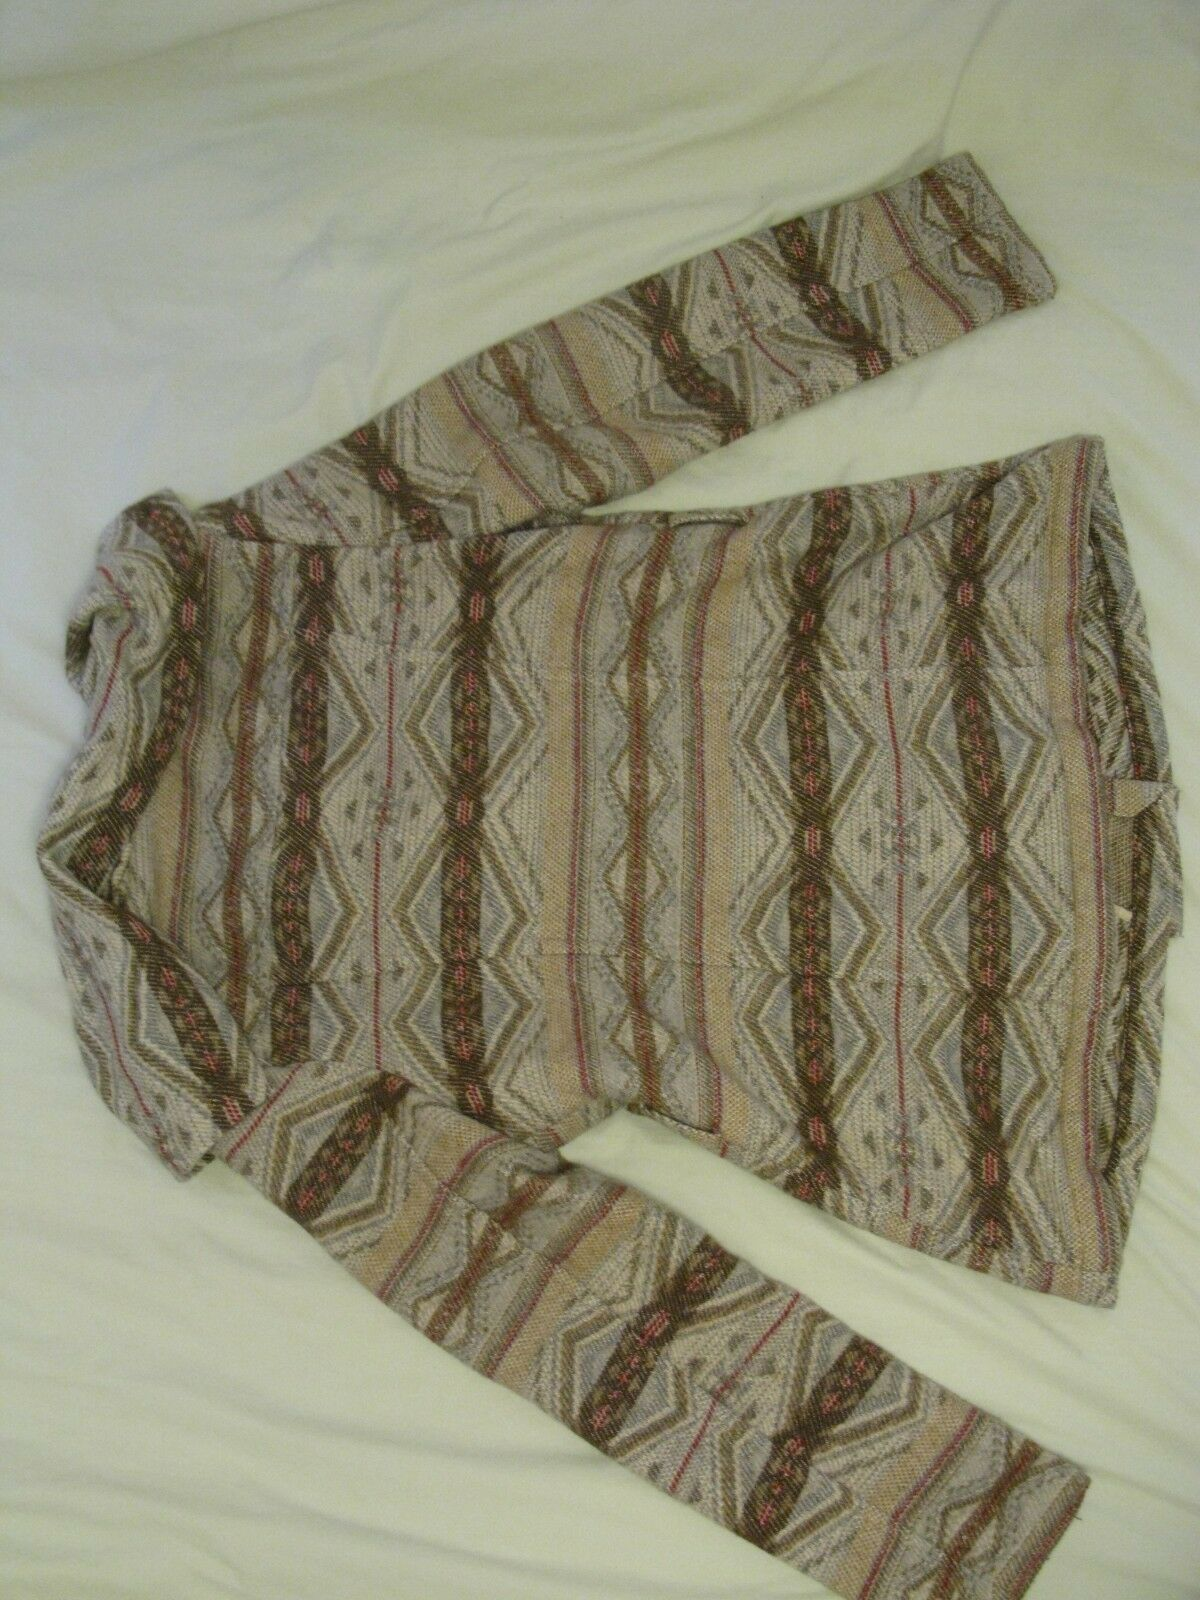 Anthropologie 'Poetry of Trees' Sweater by Daughters of the the the Liberation - Sz L a47c86